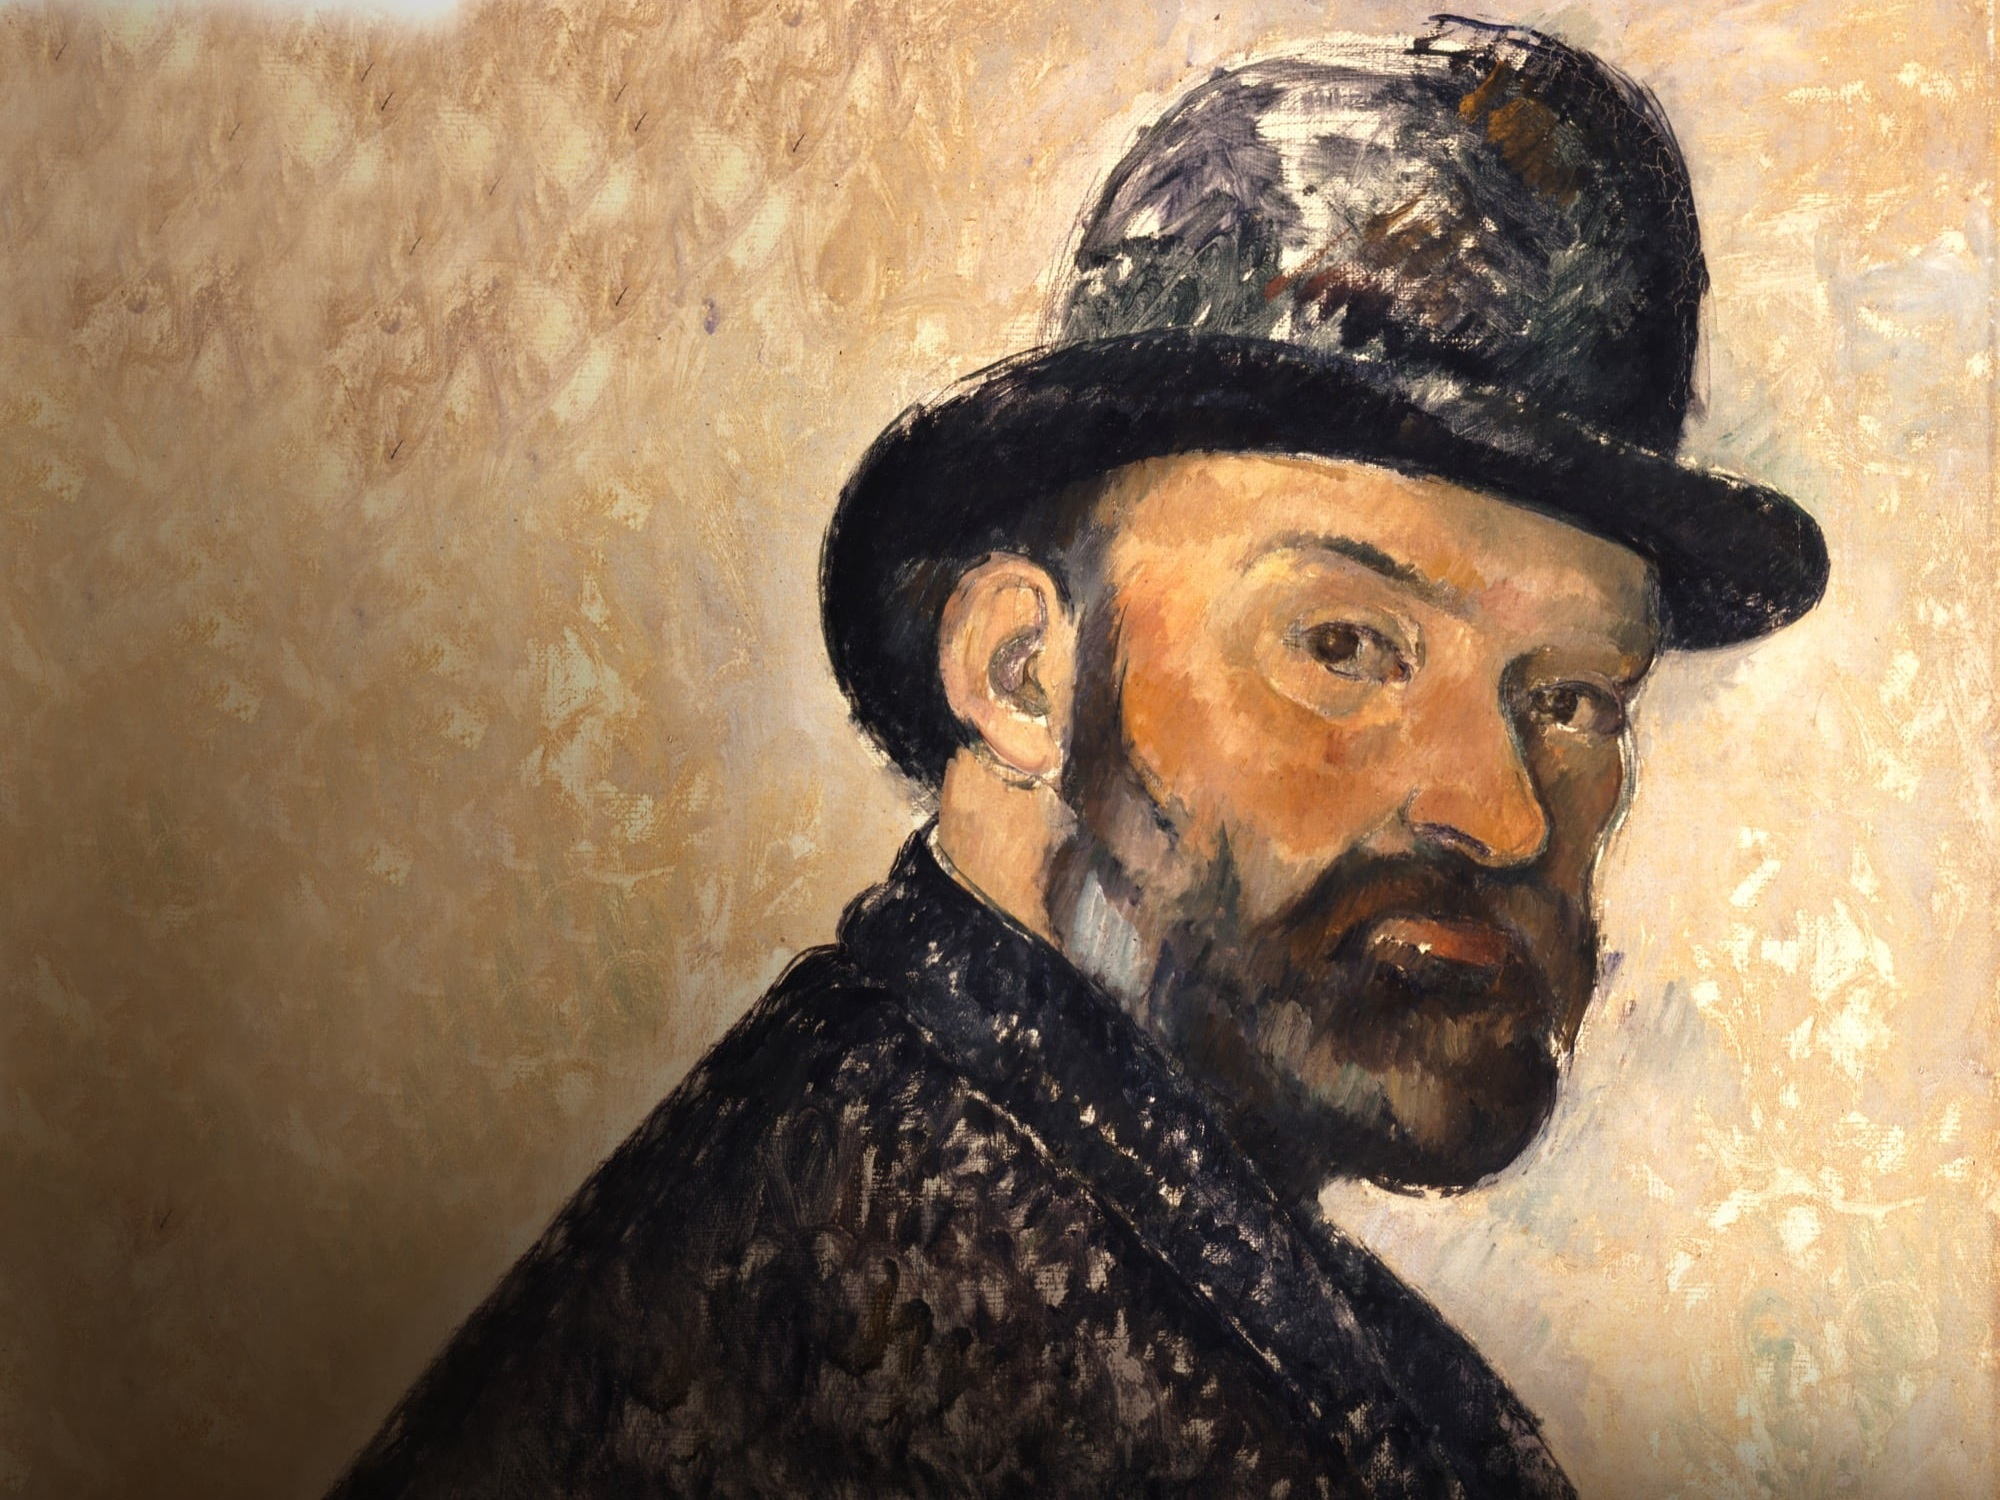 Cézanne - Portraits of a Life - October 6, 2019 - 3pmOne can appreciate 20th century art by first understanding the significance and genius of Paul Cézanne. The film takes audiences beyond the exhibition to the places Cézanne lived and worked and sheds light on an artist who is perhaps the least known of all the impressionists – until now.It features interviews with curators and experts from the National Portrait Gallery London, MoMA New York, National Gallery of Art Washington, and Musée d'Orsay Paris, and correspondence from the artist himself.Running time: 85 minutes